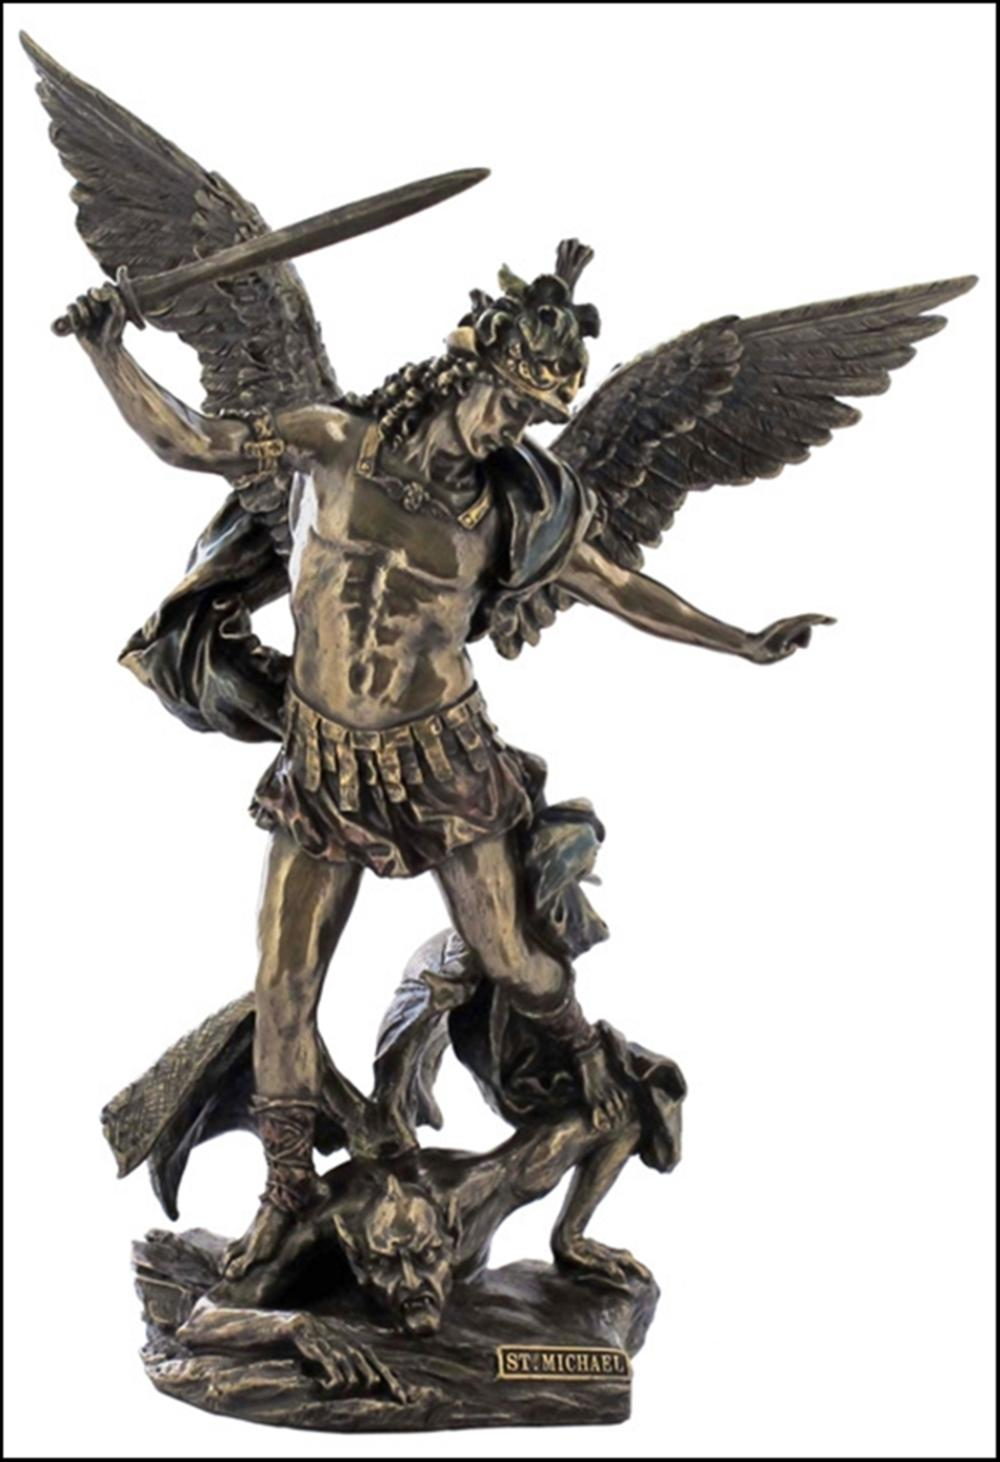 ST. MICHAEL WITH HELMET AND SWORD SLAYING THE DEMON Art